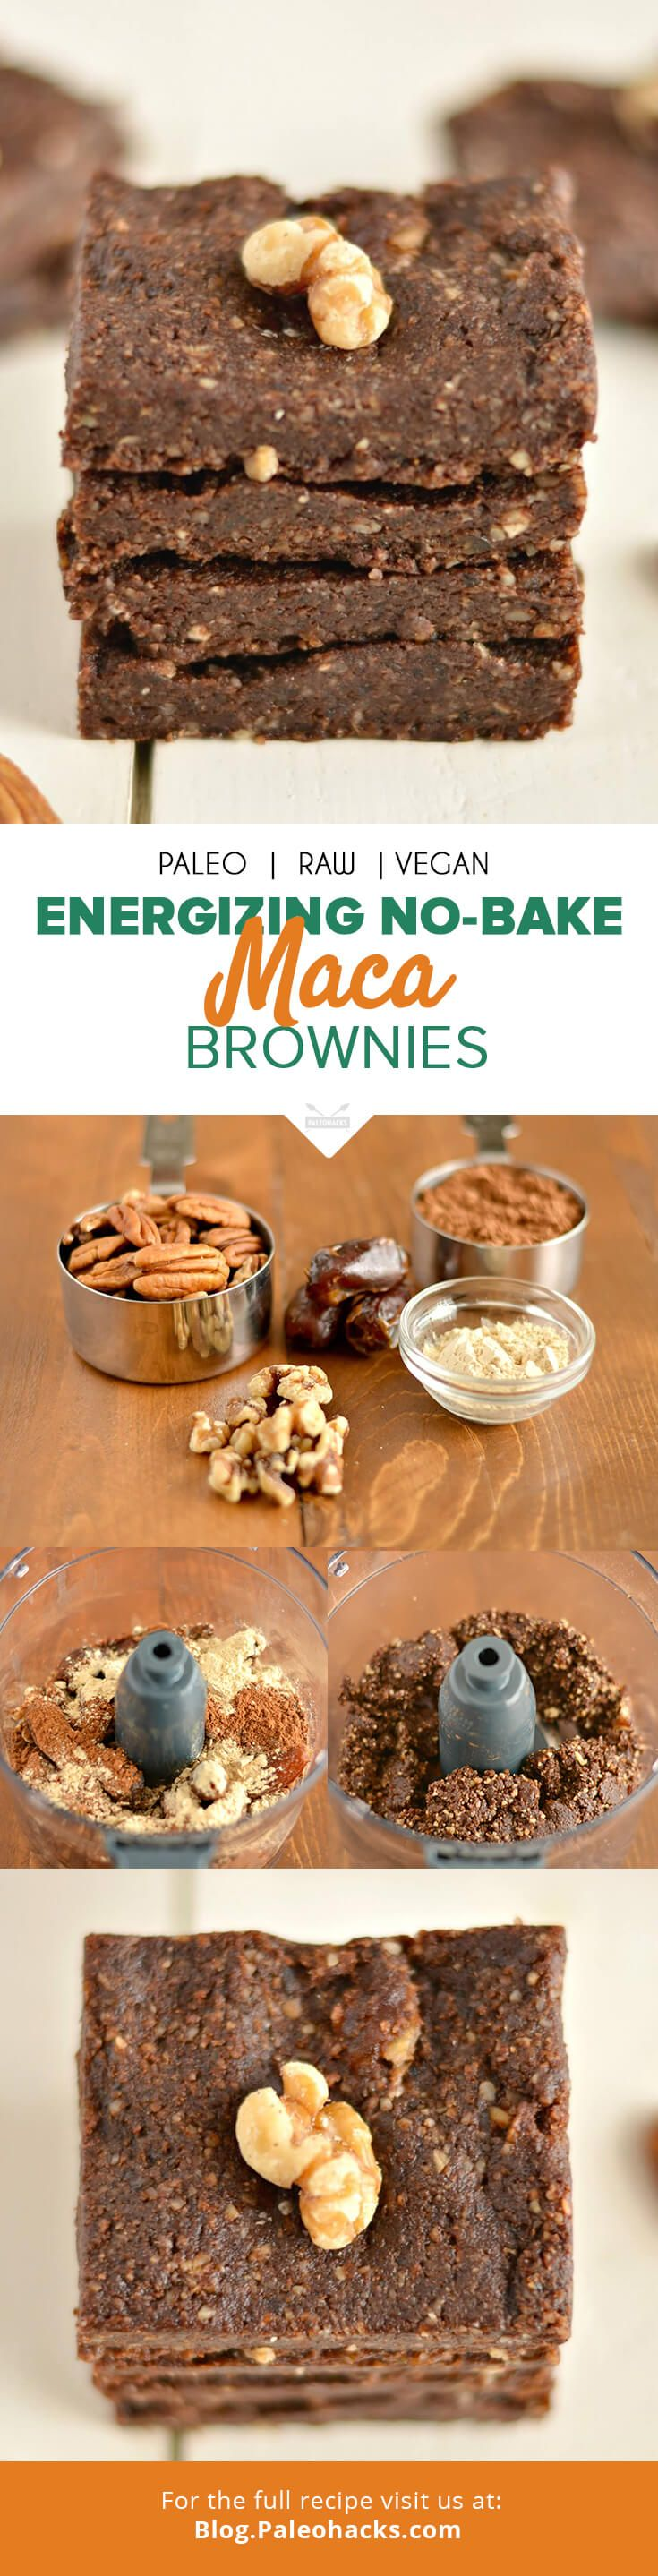 Mix things up with these raw chocolate-laced maca brownies, spiked with energizing maca powder. For the full recipe visit us here: http://paleo.co/macabrownies